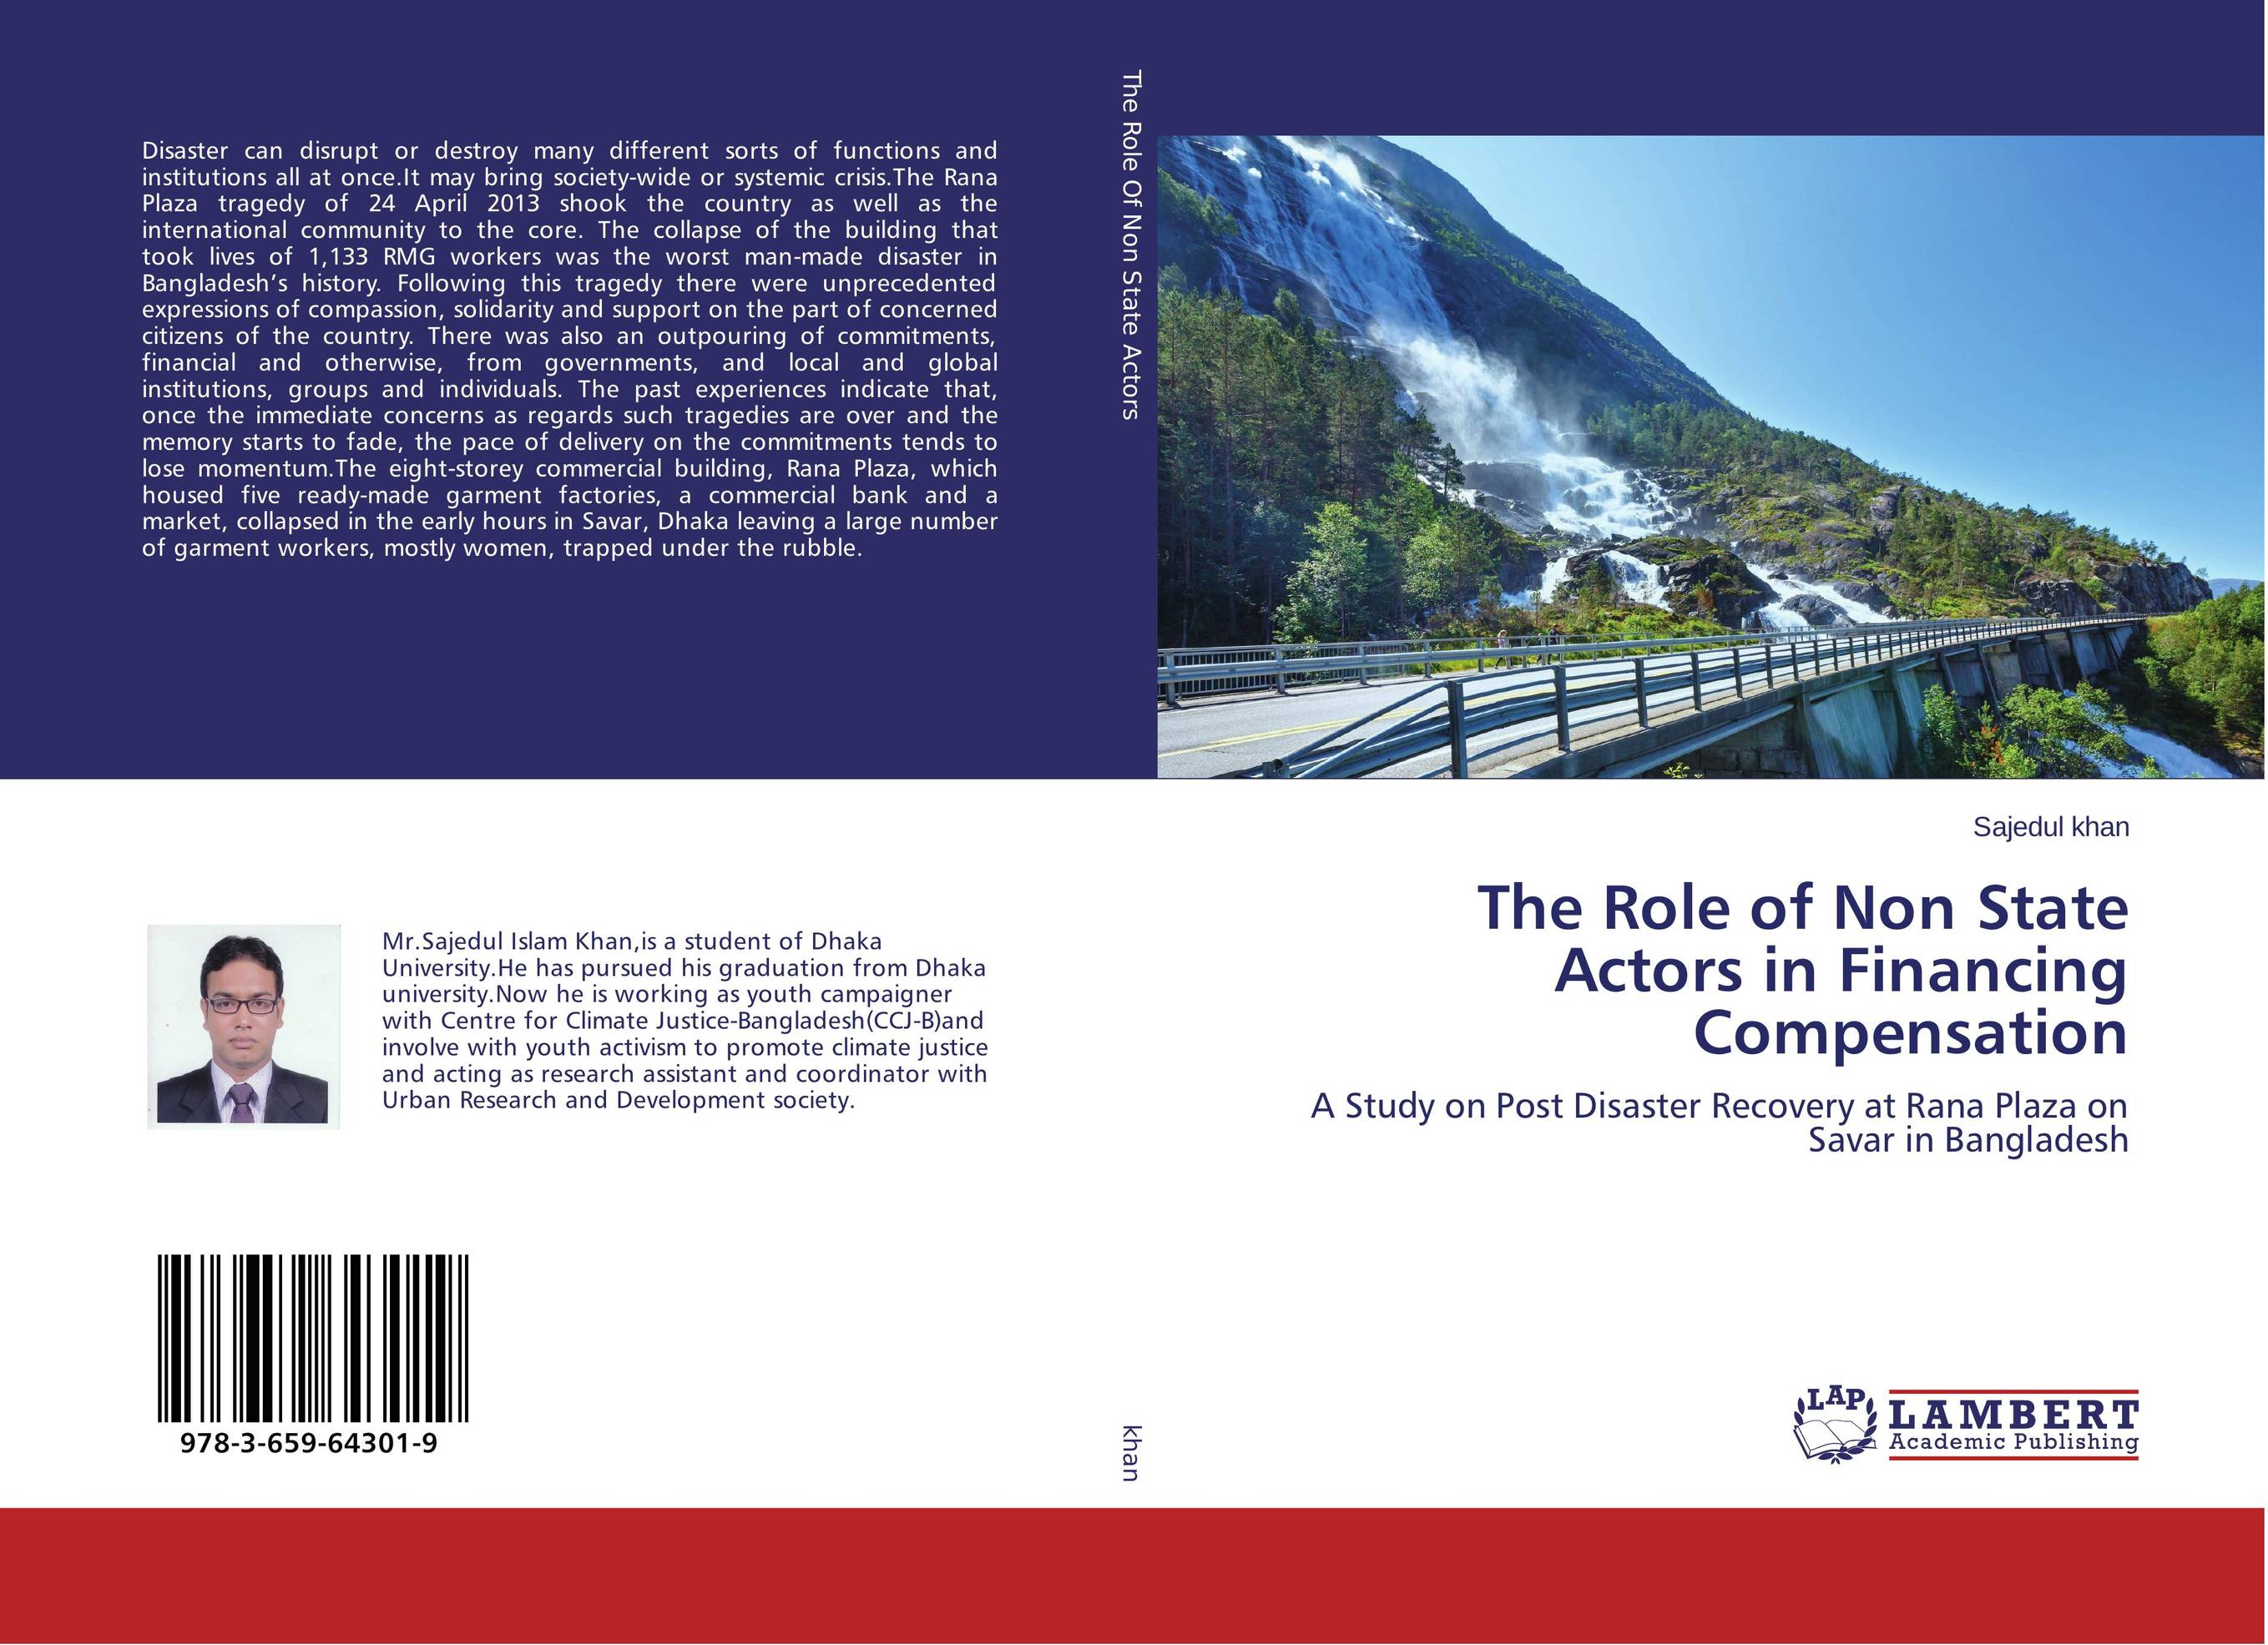 The Role of Non State Actors in Financing Compensation the commitments